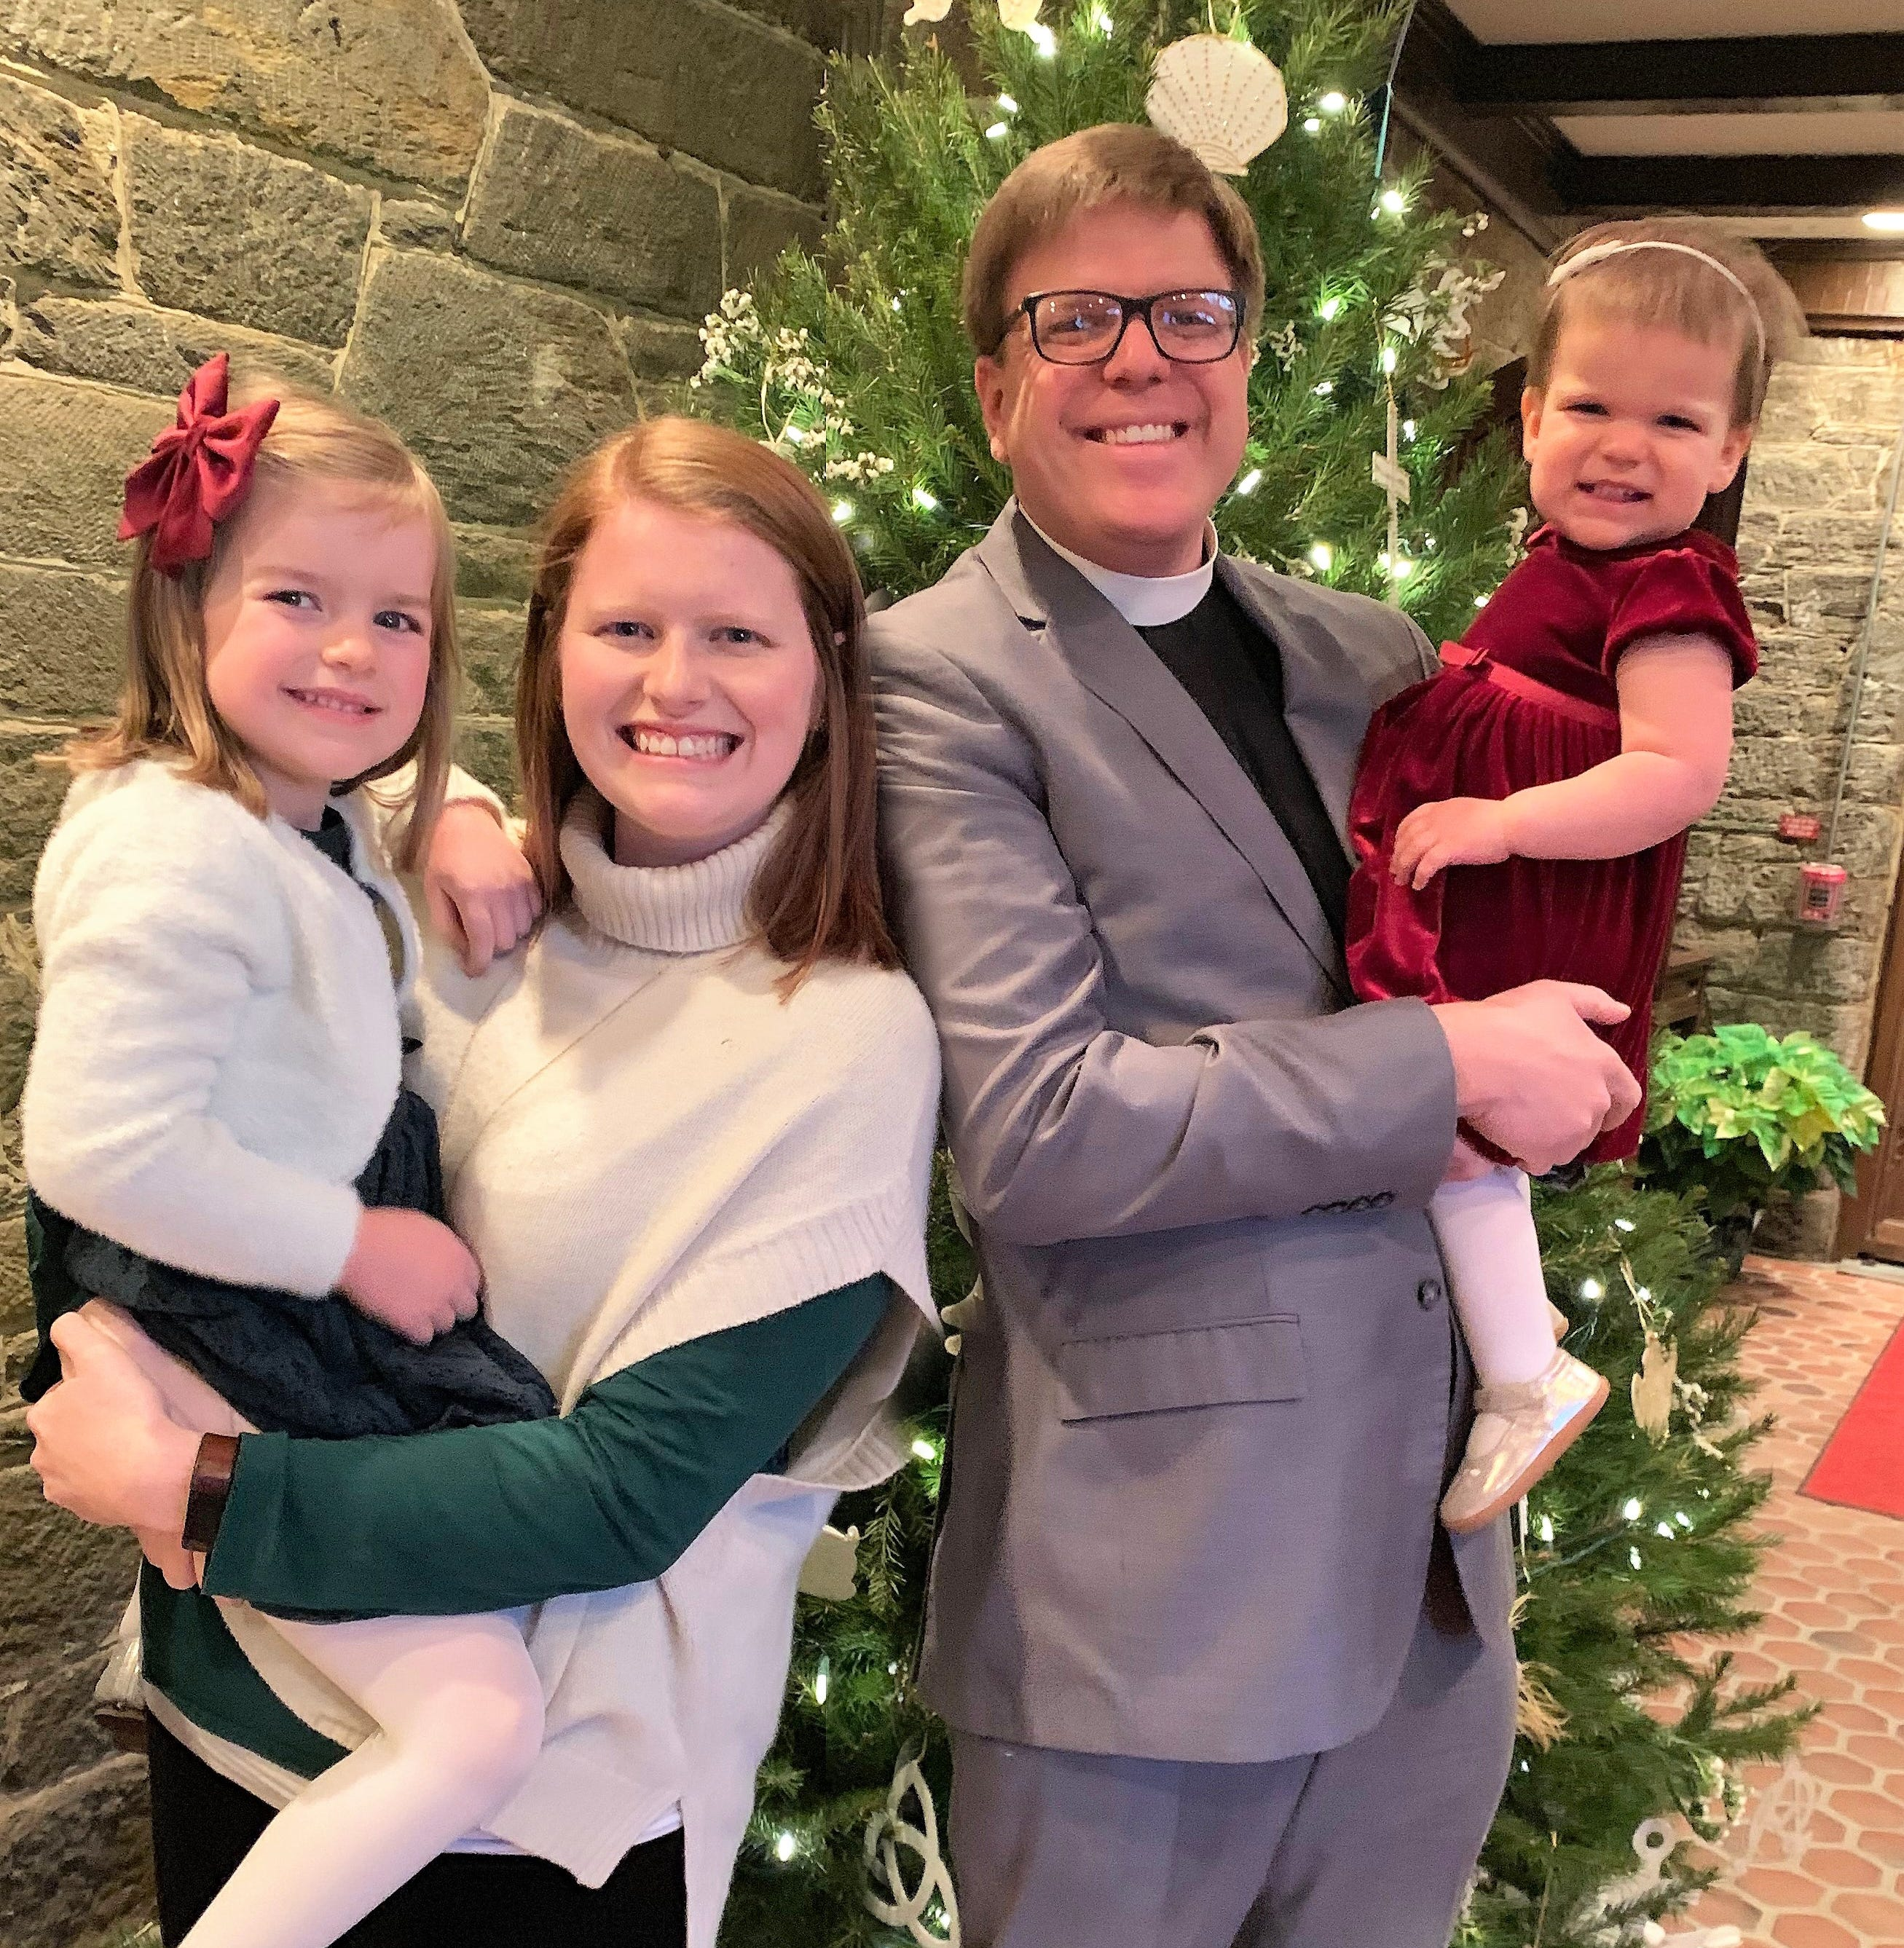 Heavenly decision: Former curate returning to lead Abilene Episcopal church